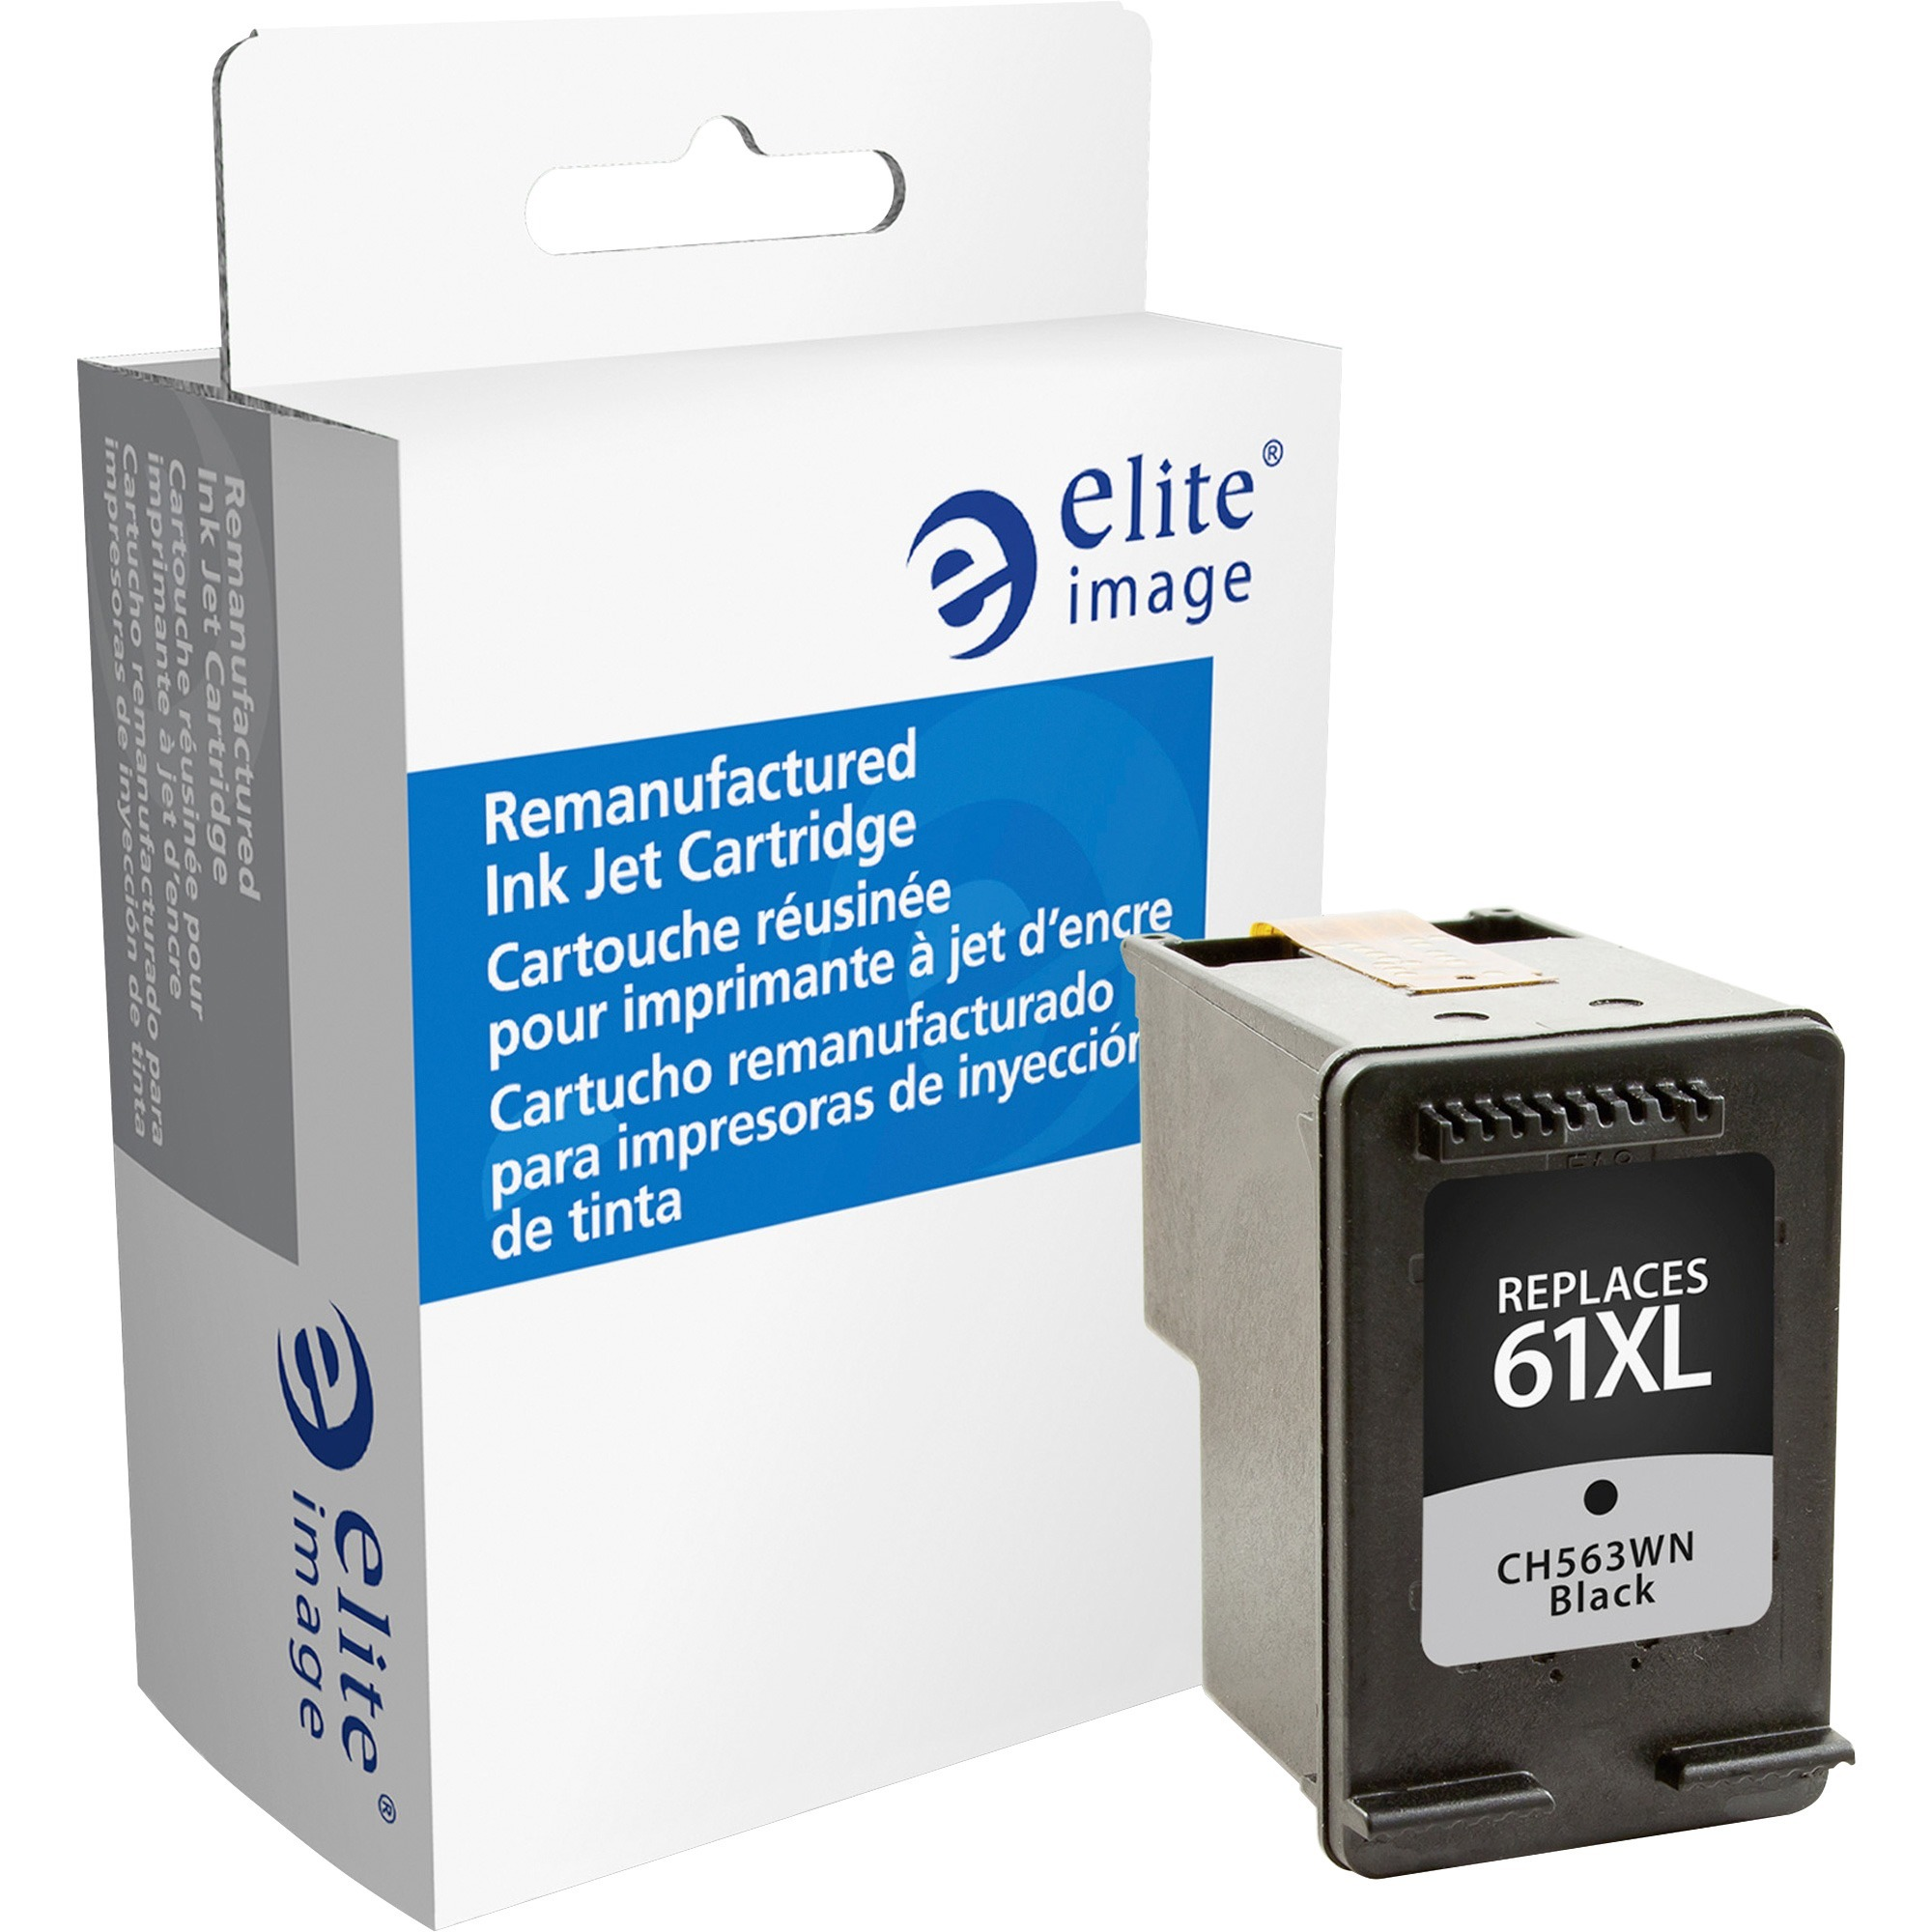 Elite Image, ELI75803, 75803 Remanufactured Ink Cartridge, 1 Each